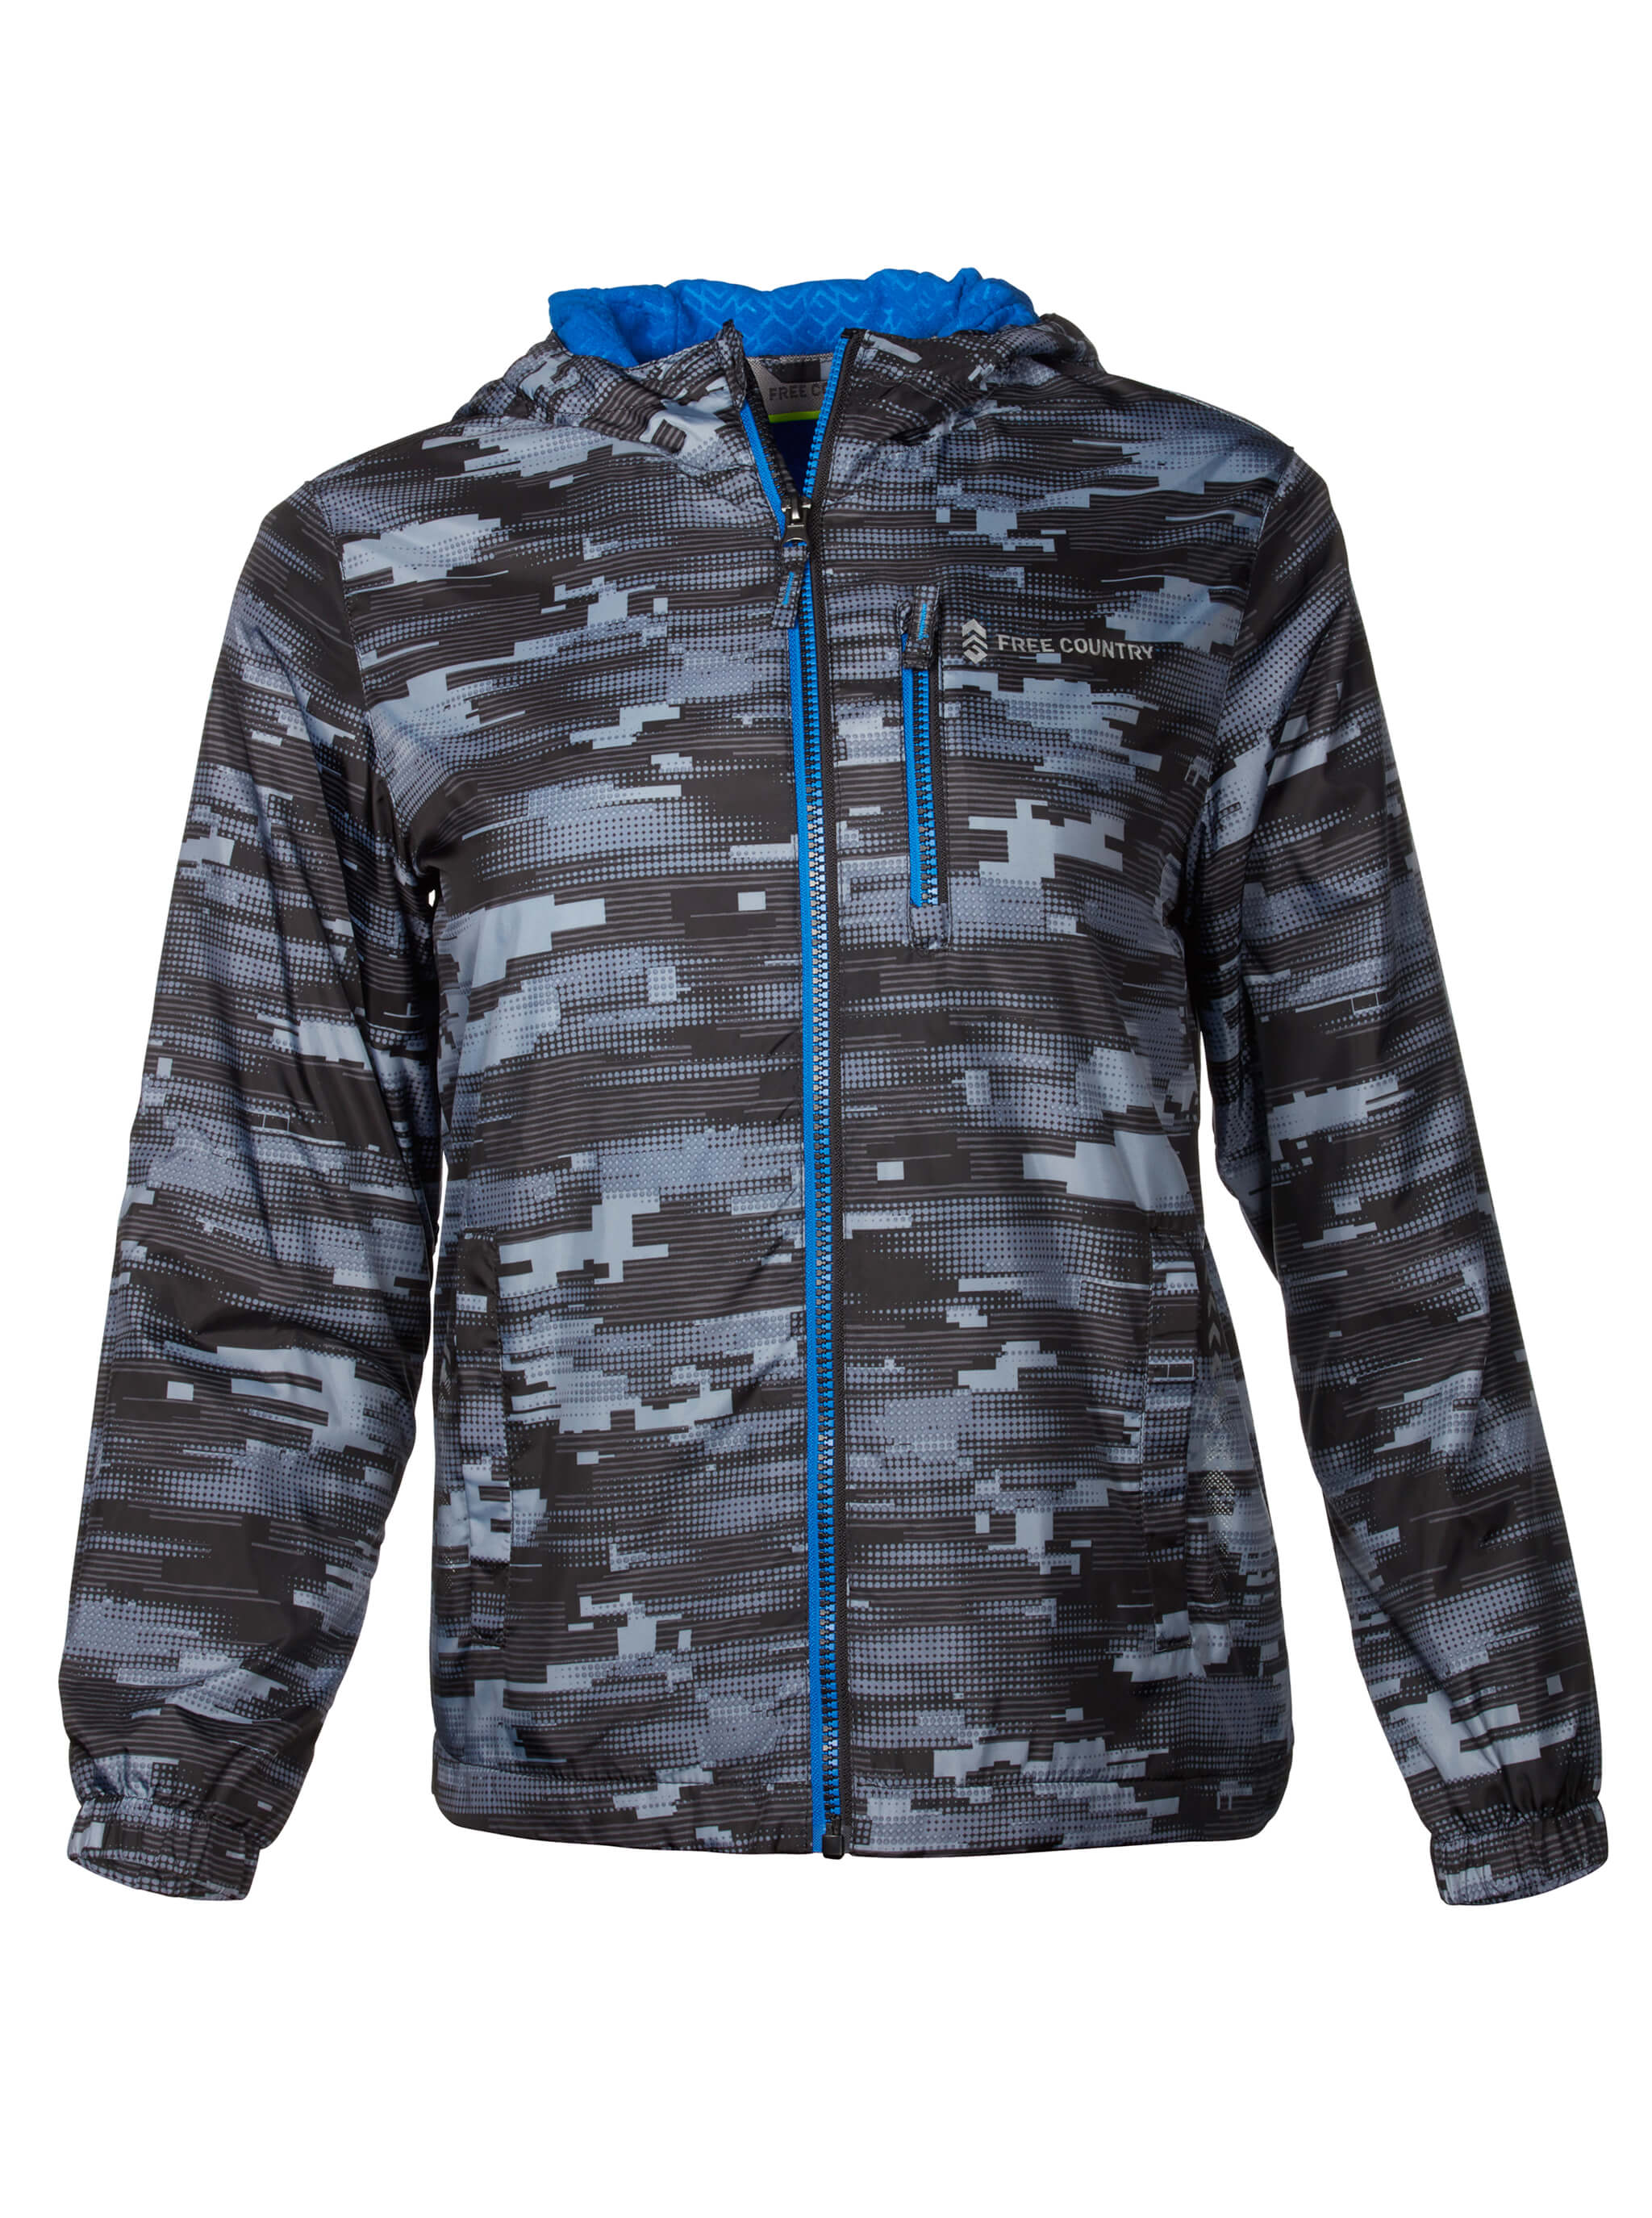 bdd46c493 Boys  Jackets – Free Country